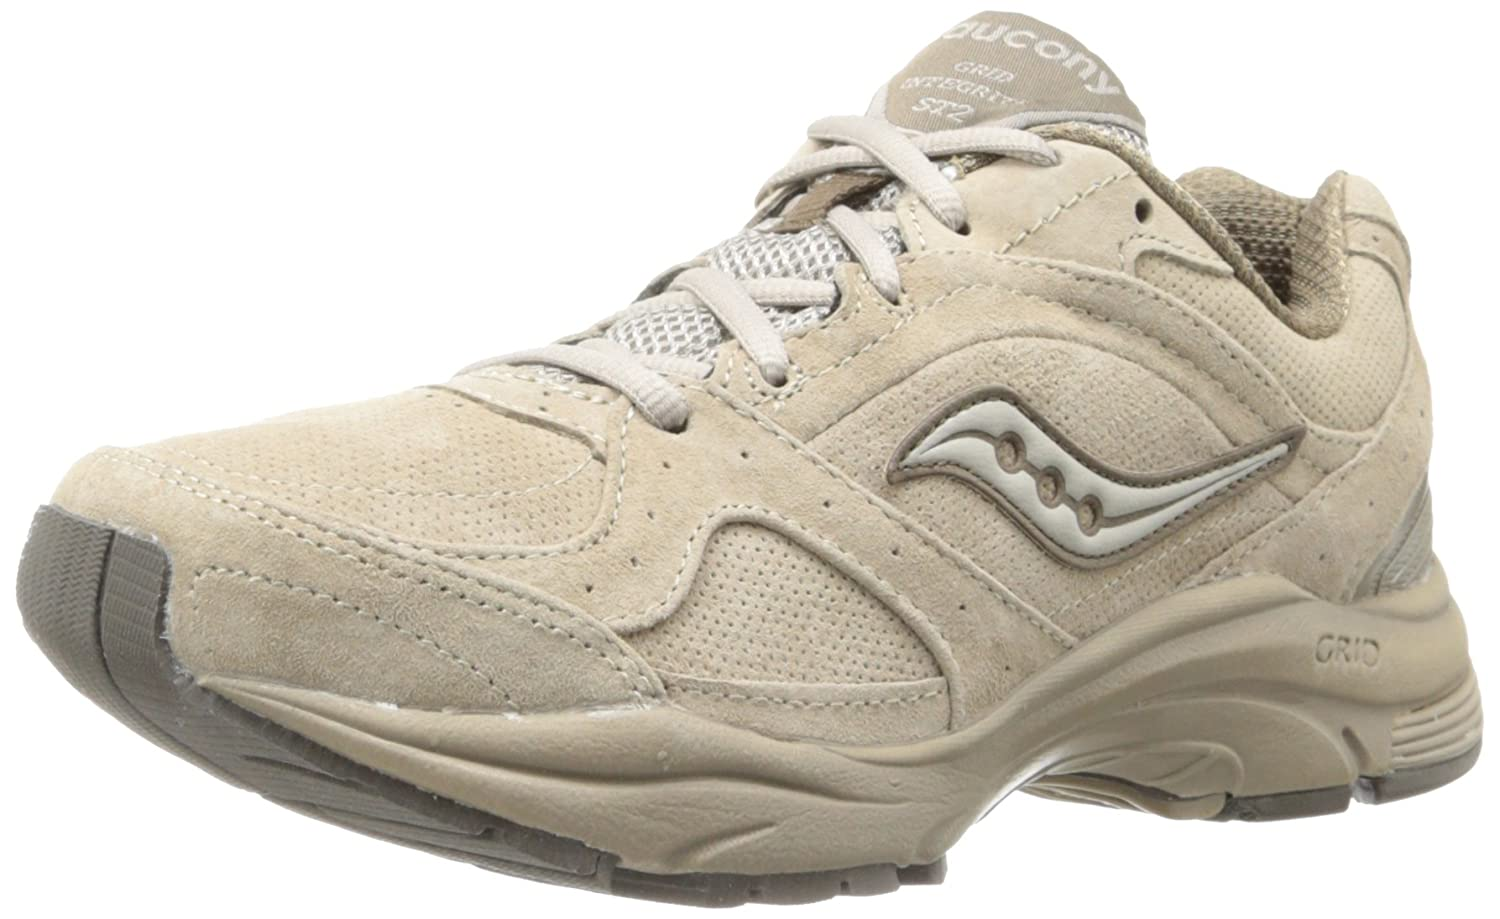 Saucony Women's ProGrid Integrity ST2 Walking Shoe B00CWBB65I 10.5 D US|Stone